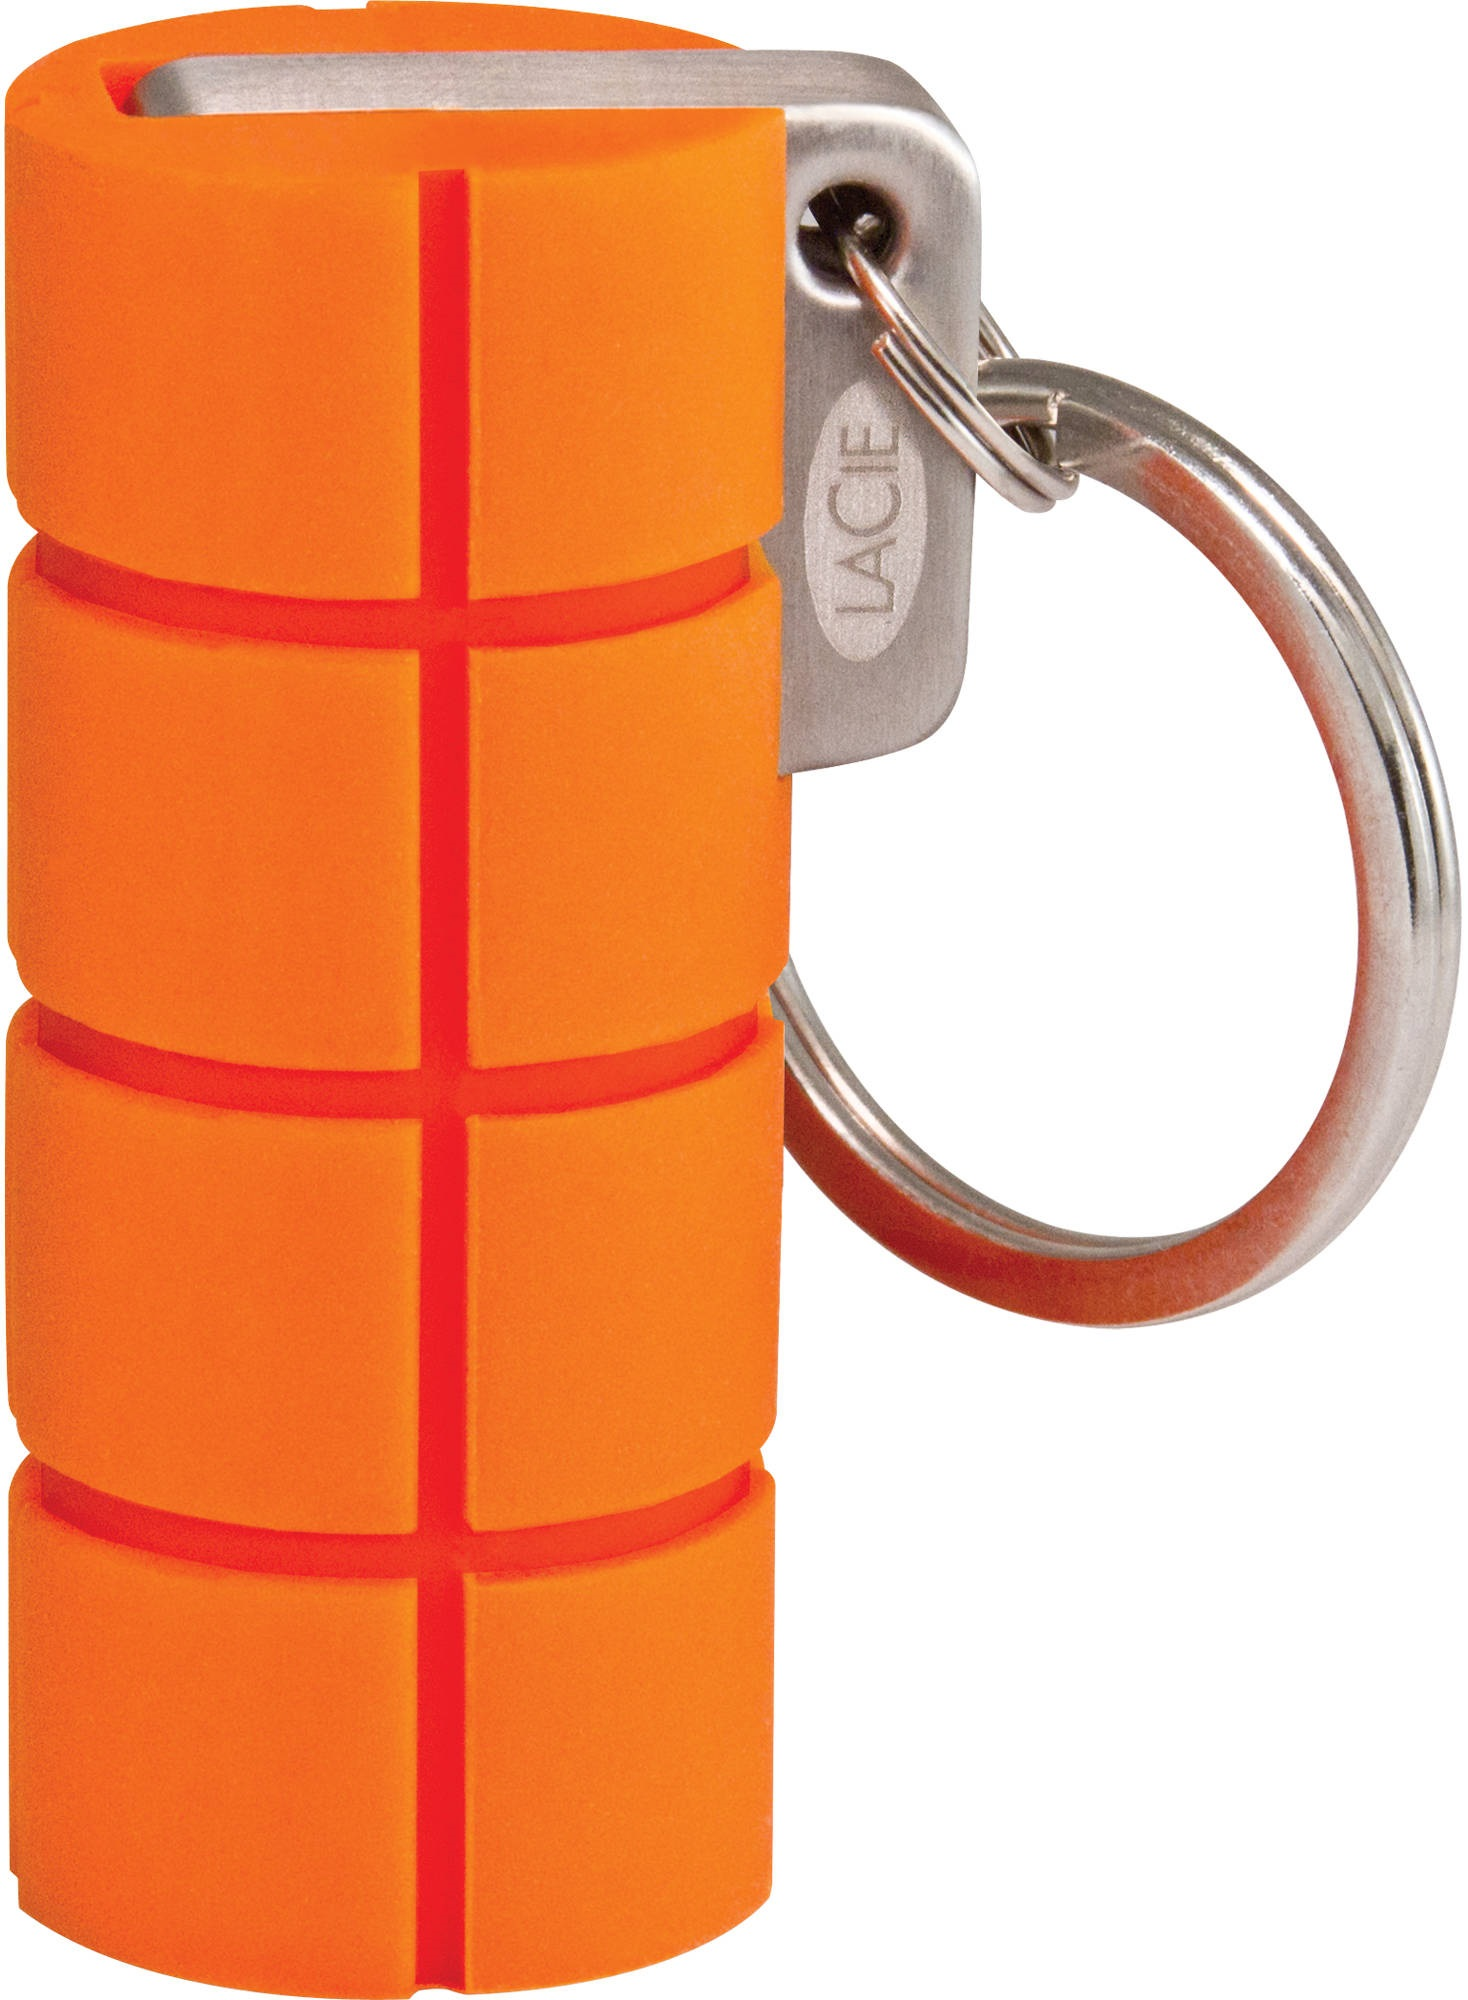 Lacie Rugged Key 9000147